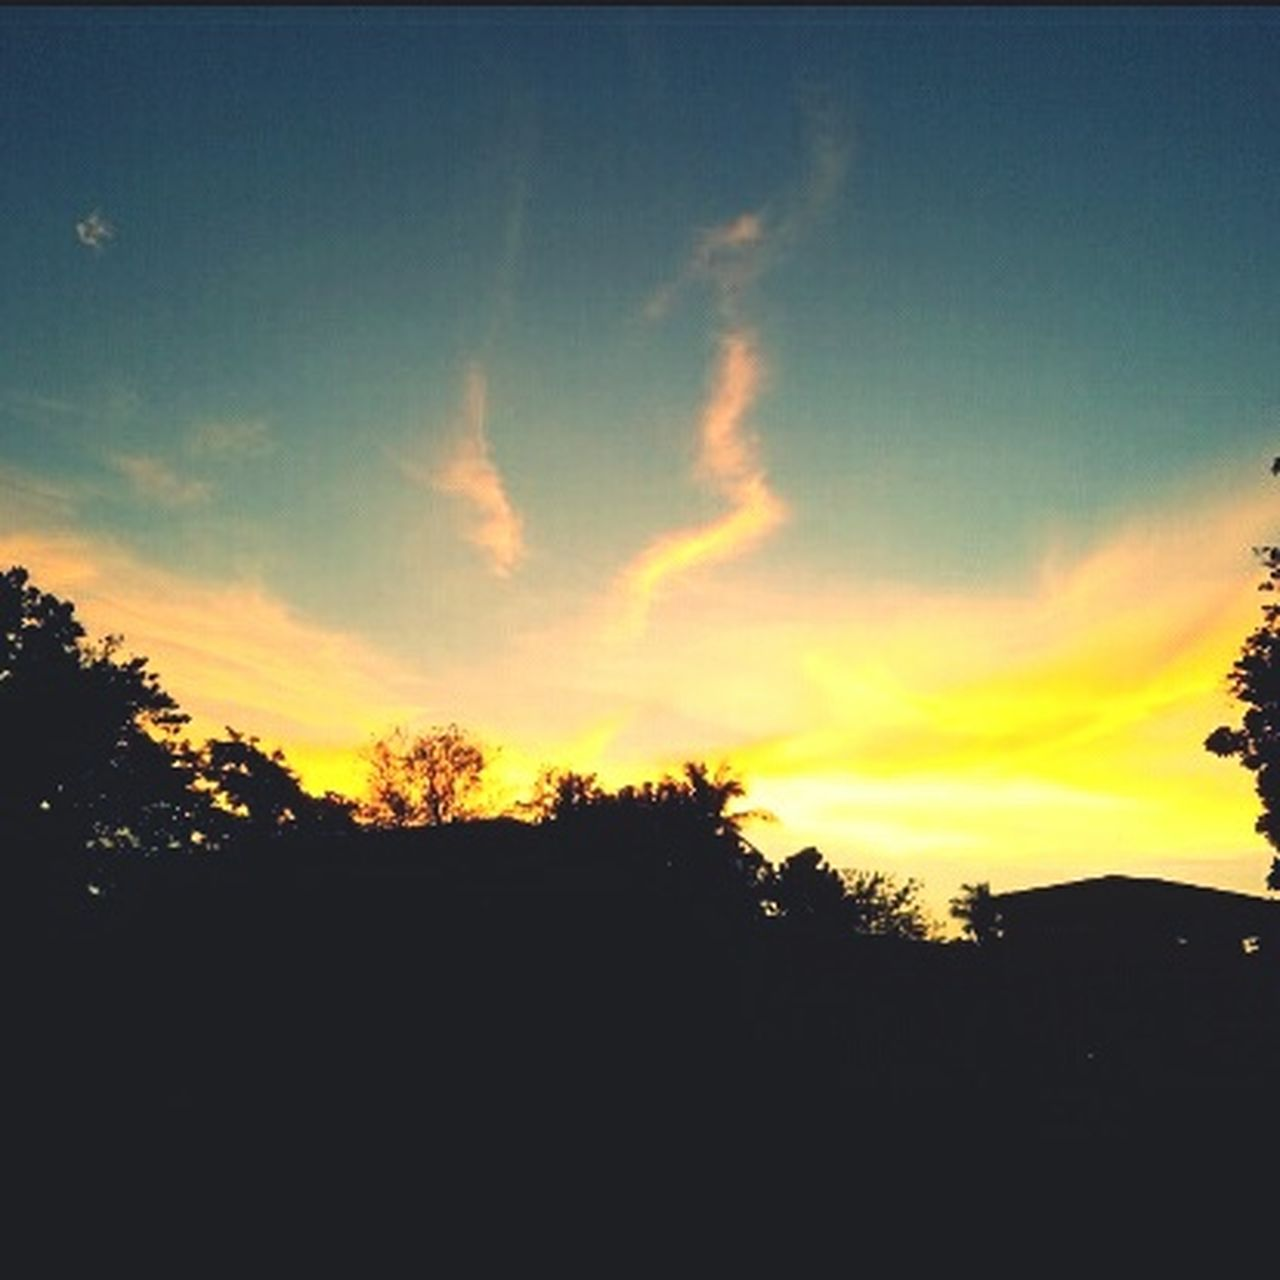 silhouette, sunset, tree, nature, sky, beauty in nature, scenics, tranquil scene, tranquility, no people, outdoors, landscape, day